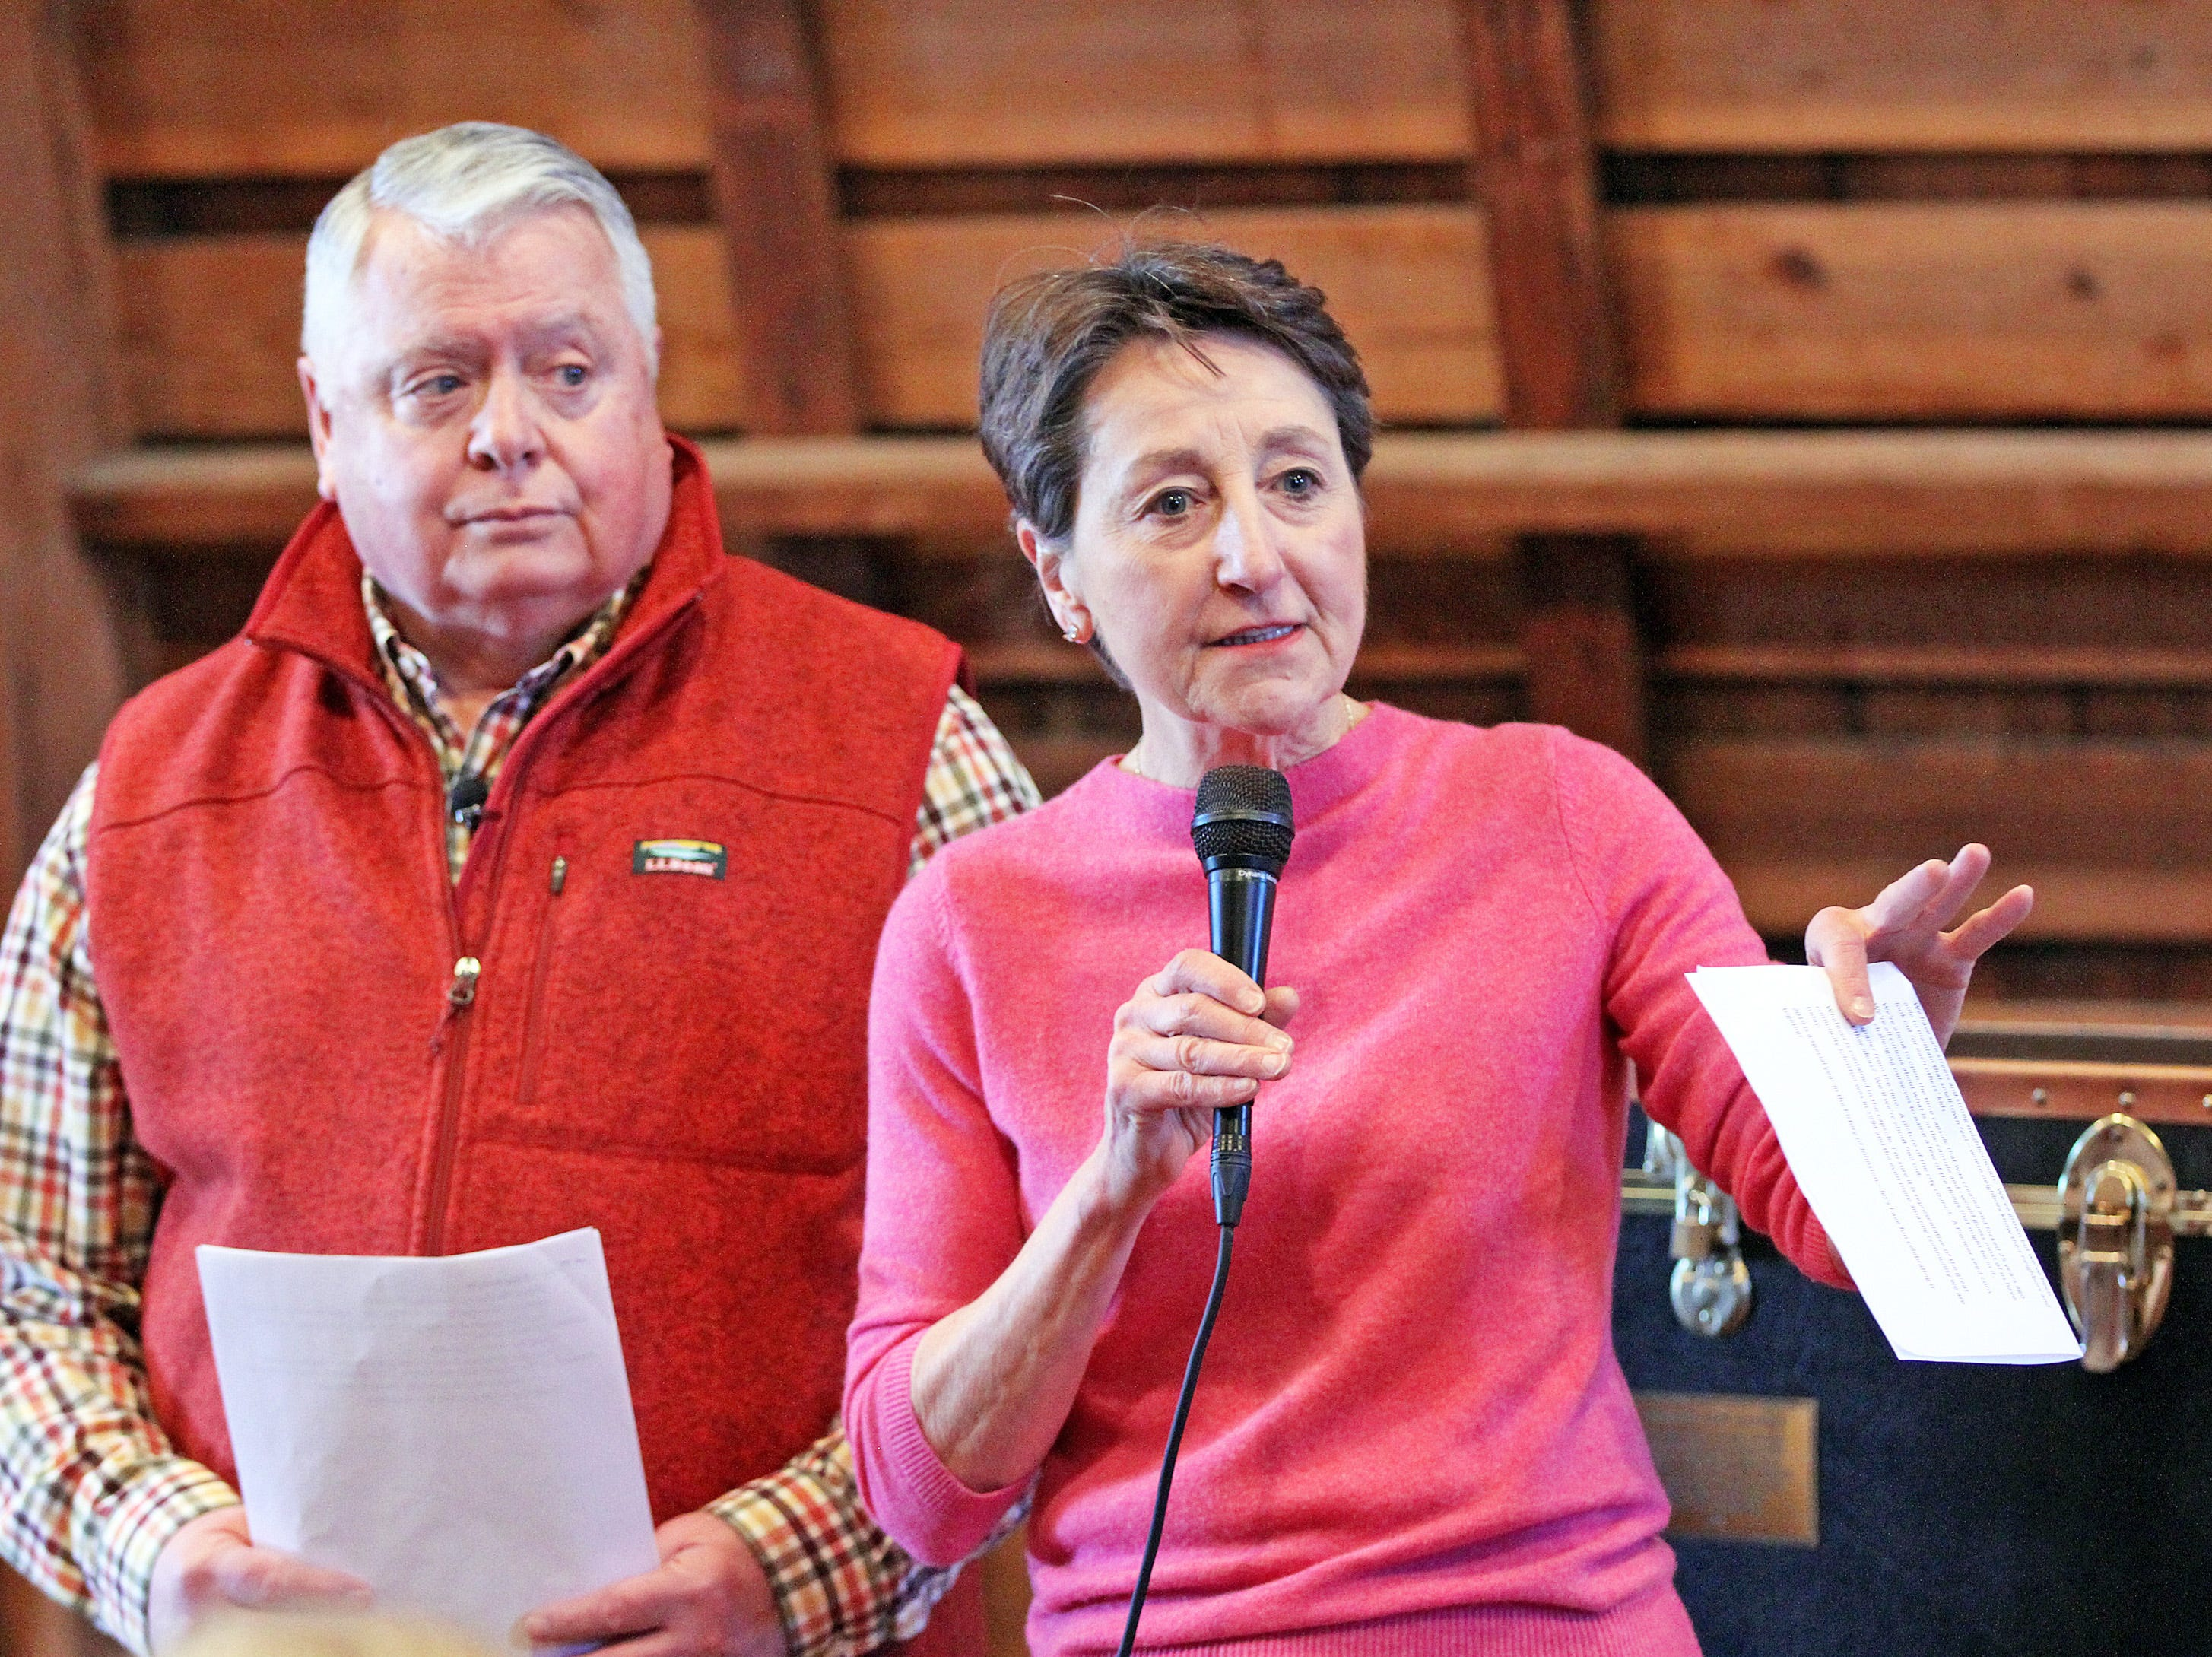 Johnston Mayor Paula Dierenfeld and President of the Johnston Historical Society Mike Knight field questions from the crowd during the opening of the 25-year old time capsule from 1994 as the city of Johnston celebrates its 50th anniversary at the Simpson House and Barn Museum at 6161 Northglenn Drive on Sunday, March 10, 2019, in Johnston. The city was incorporated in 1969 with 2,236 residents and 50 years later, over 21,000 residents call Johnston home.